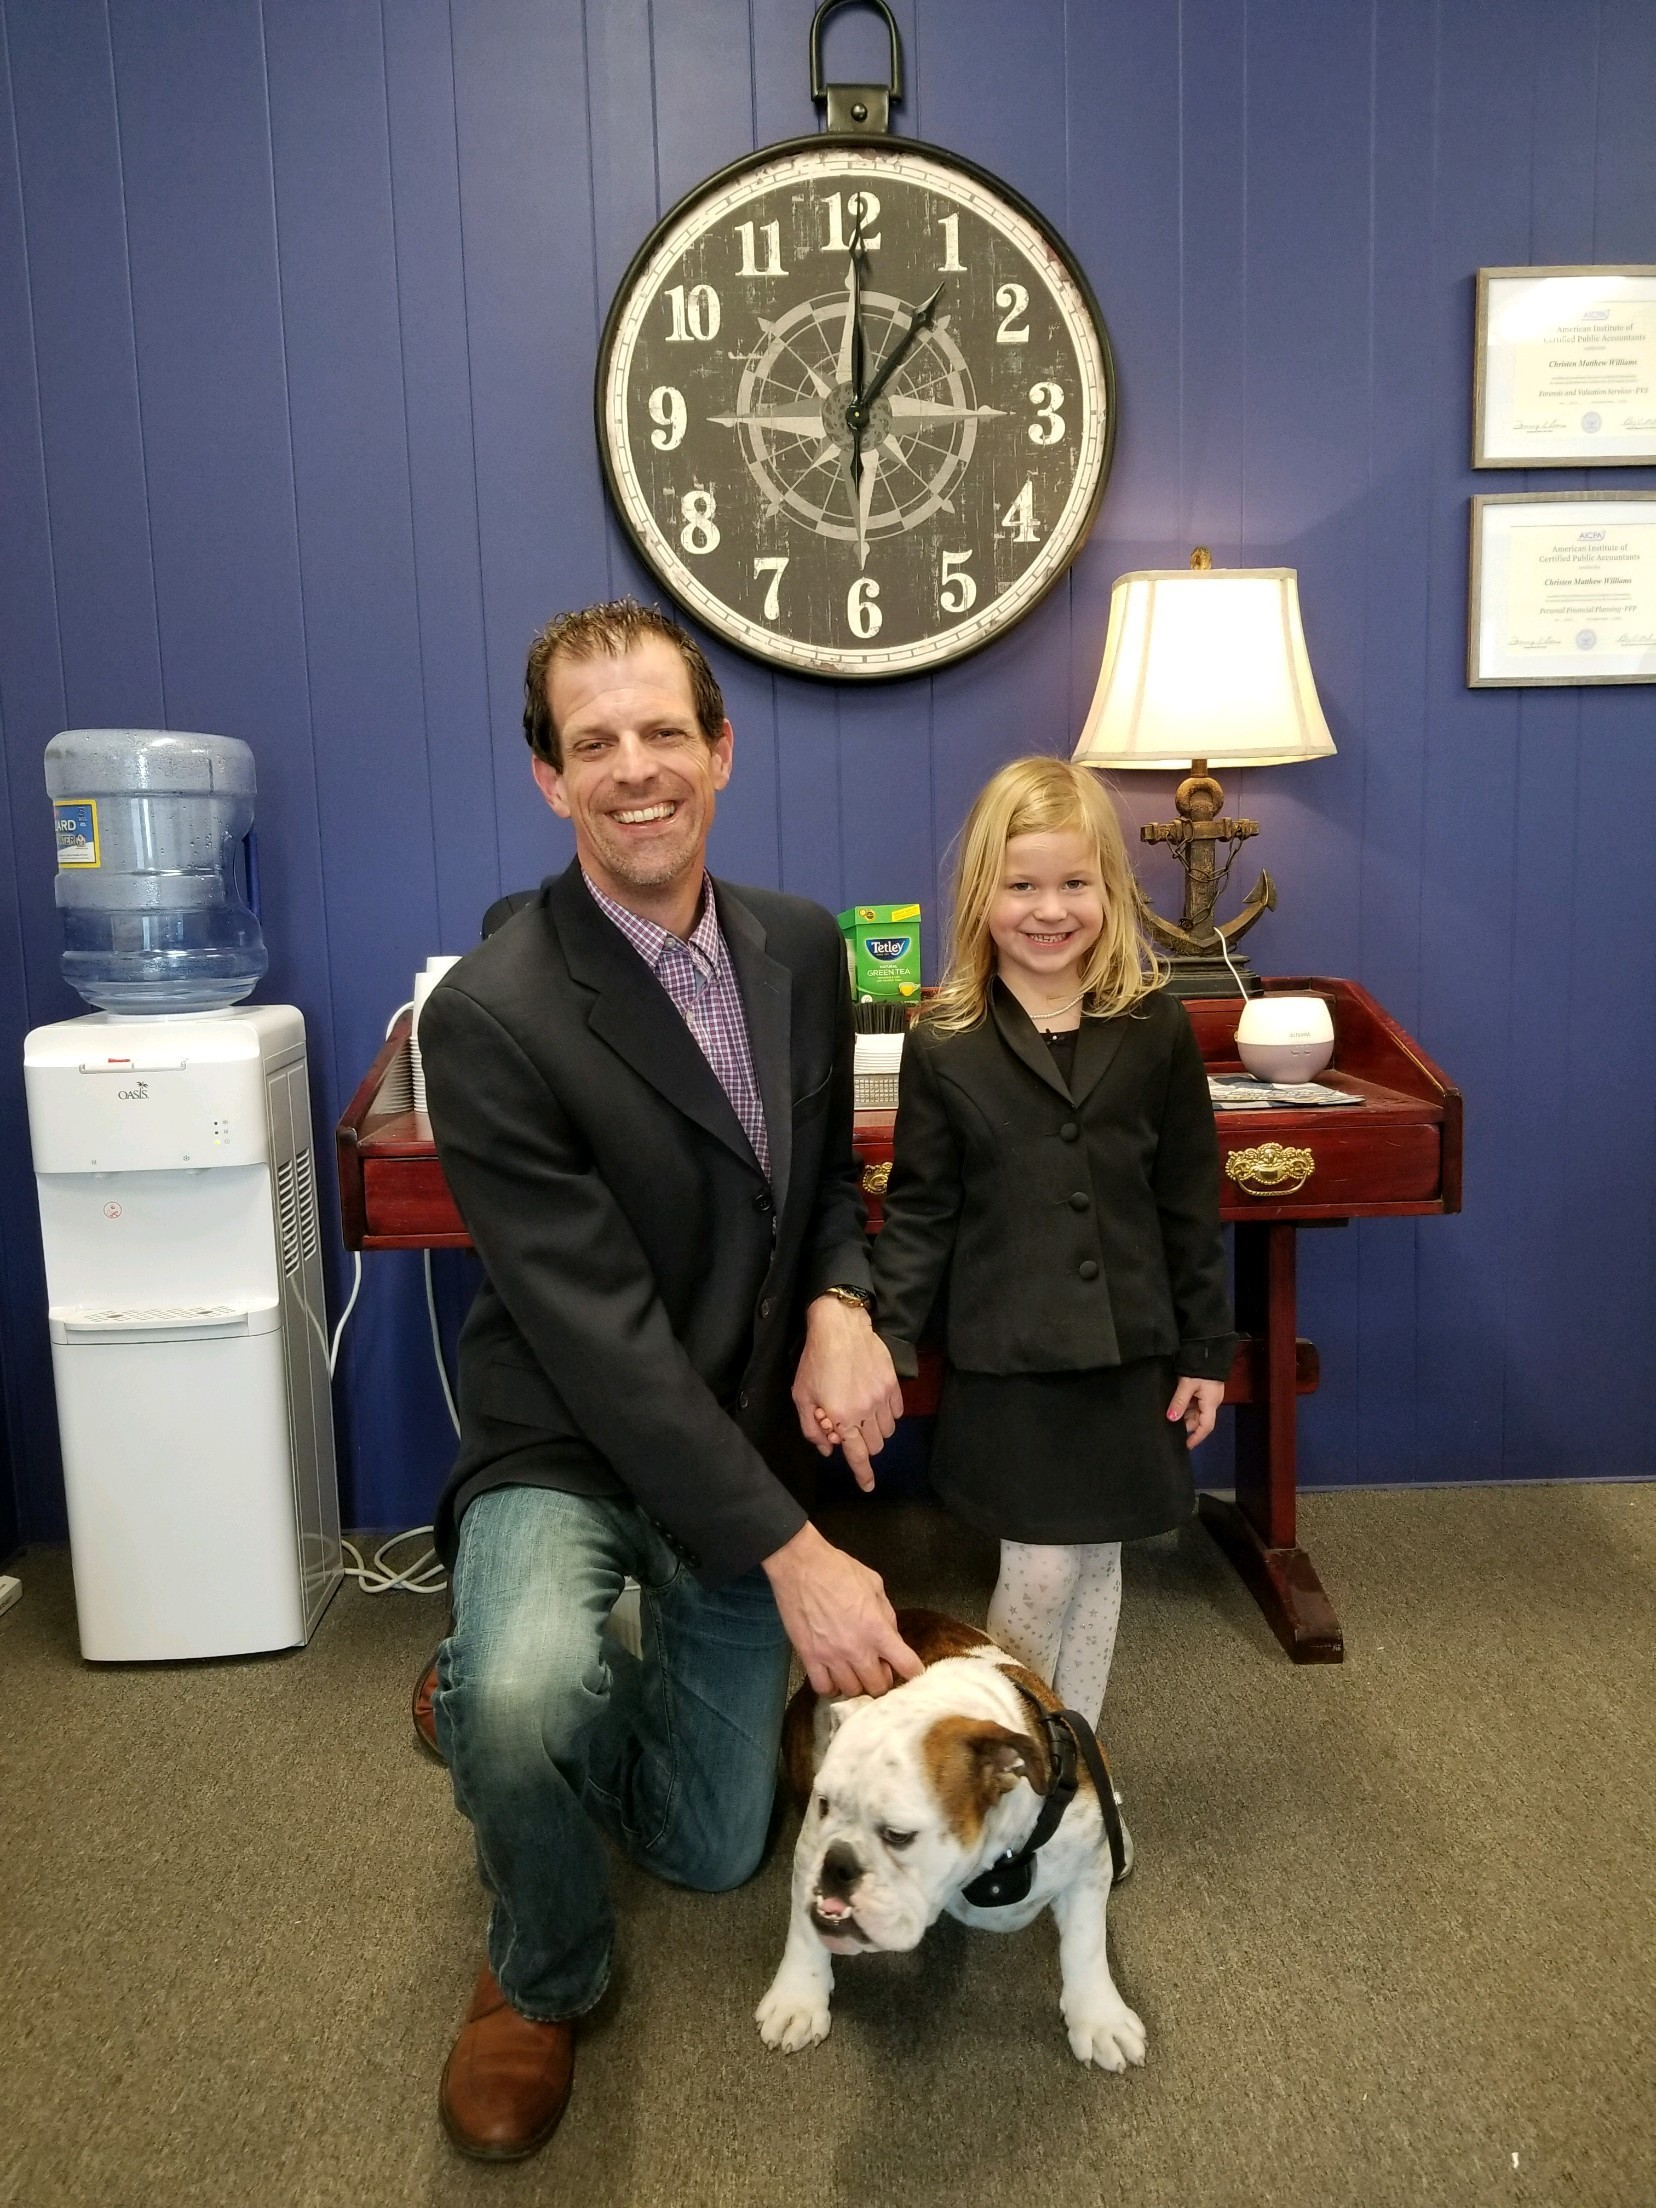 Chris Williams and daughter with bulldog